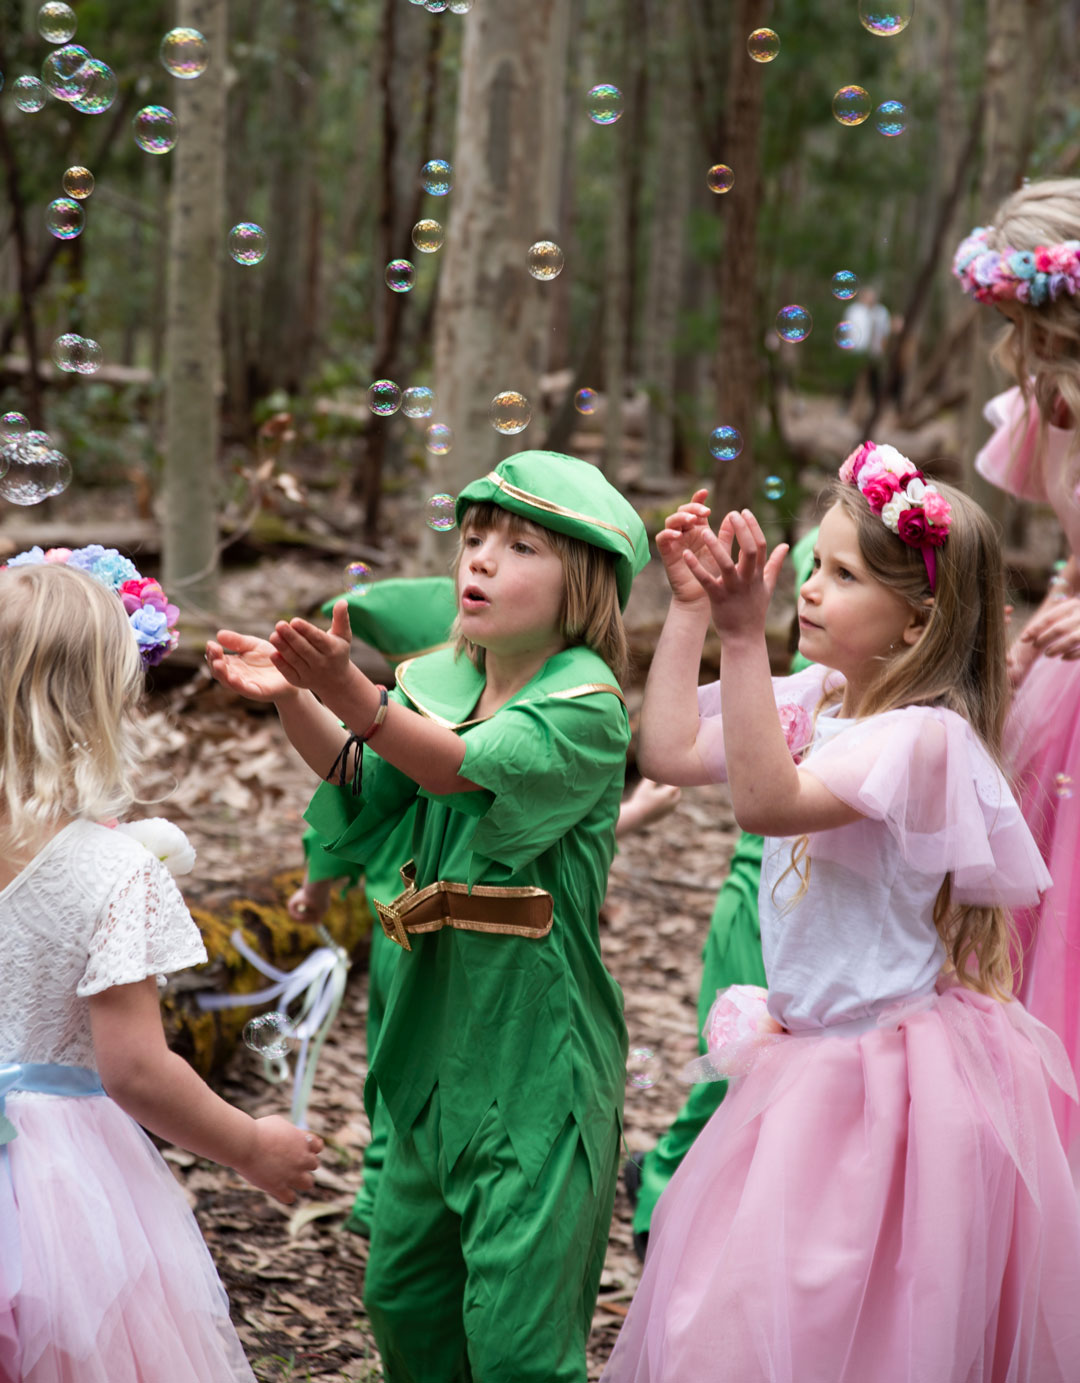 Pixies and fairy children playing with bubbles at party